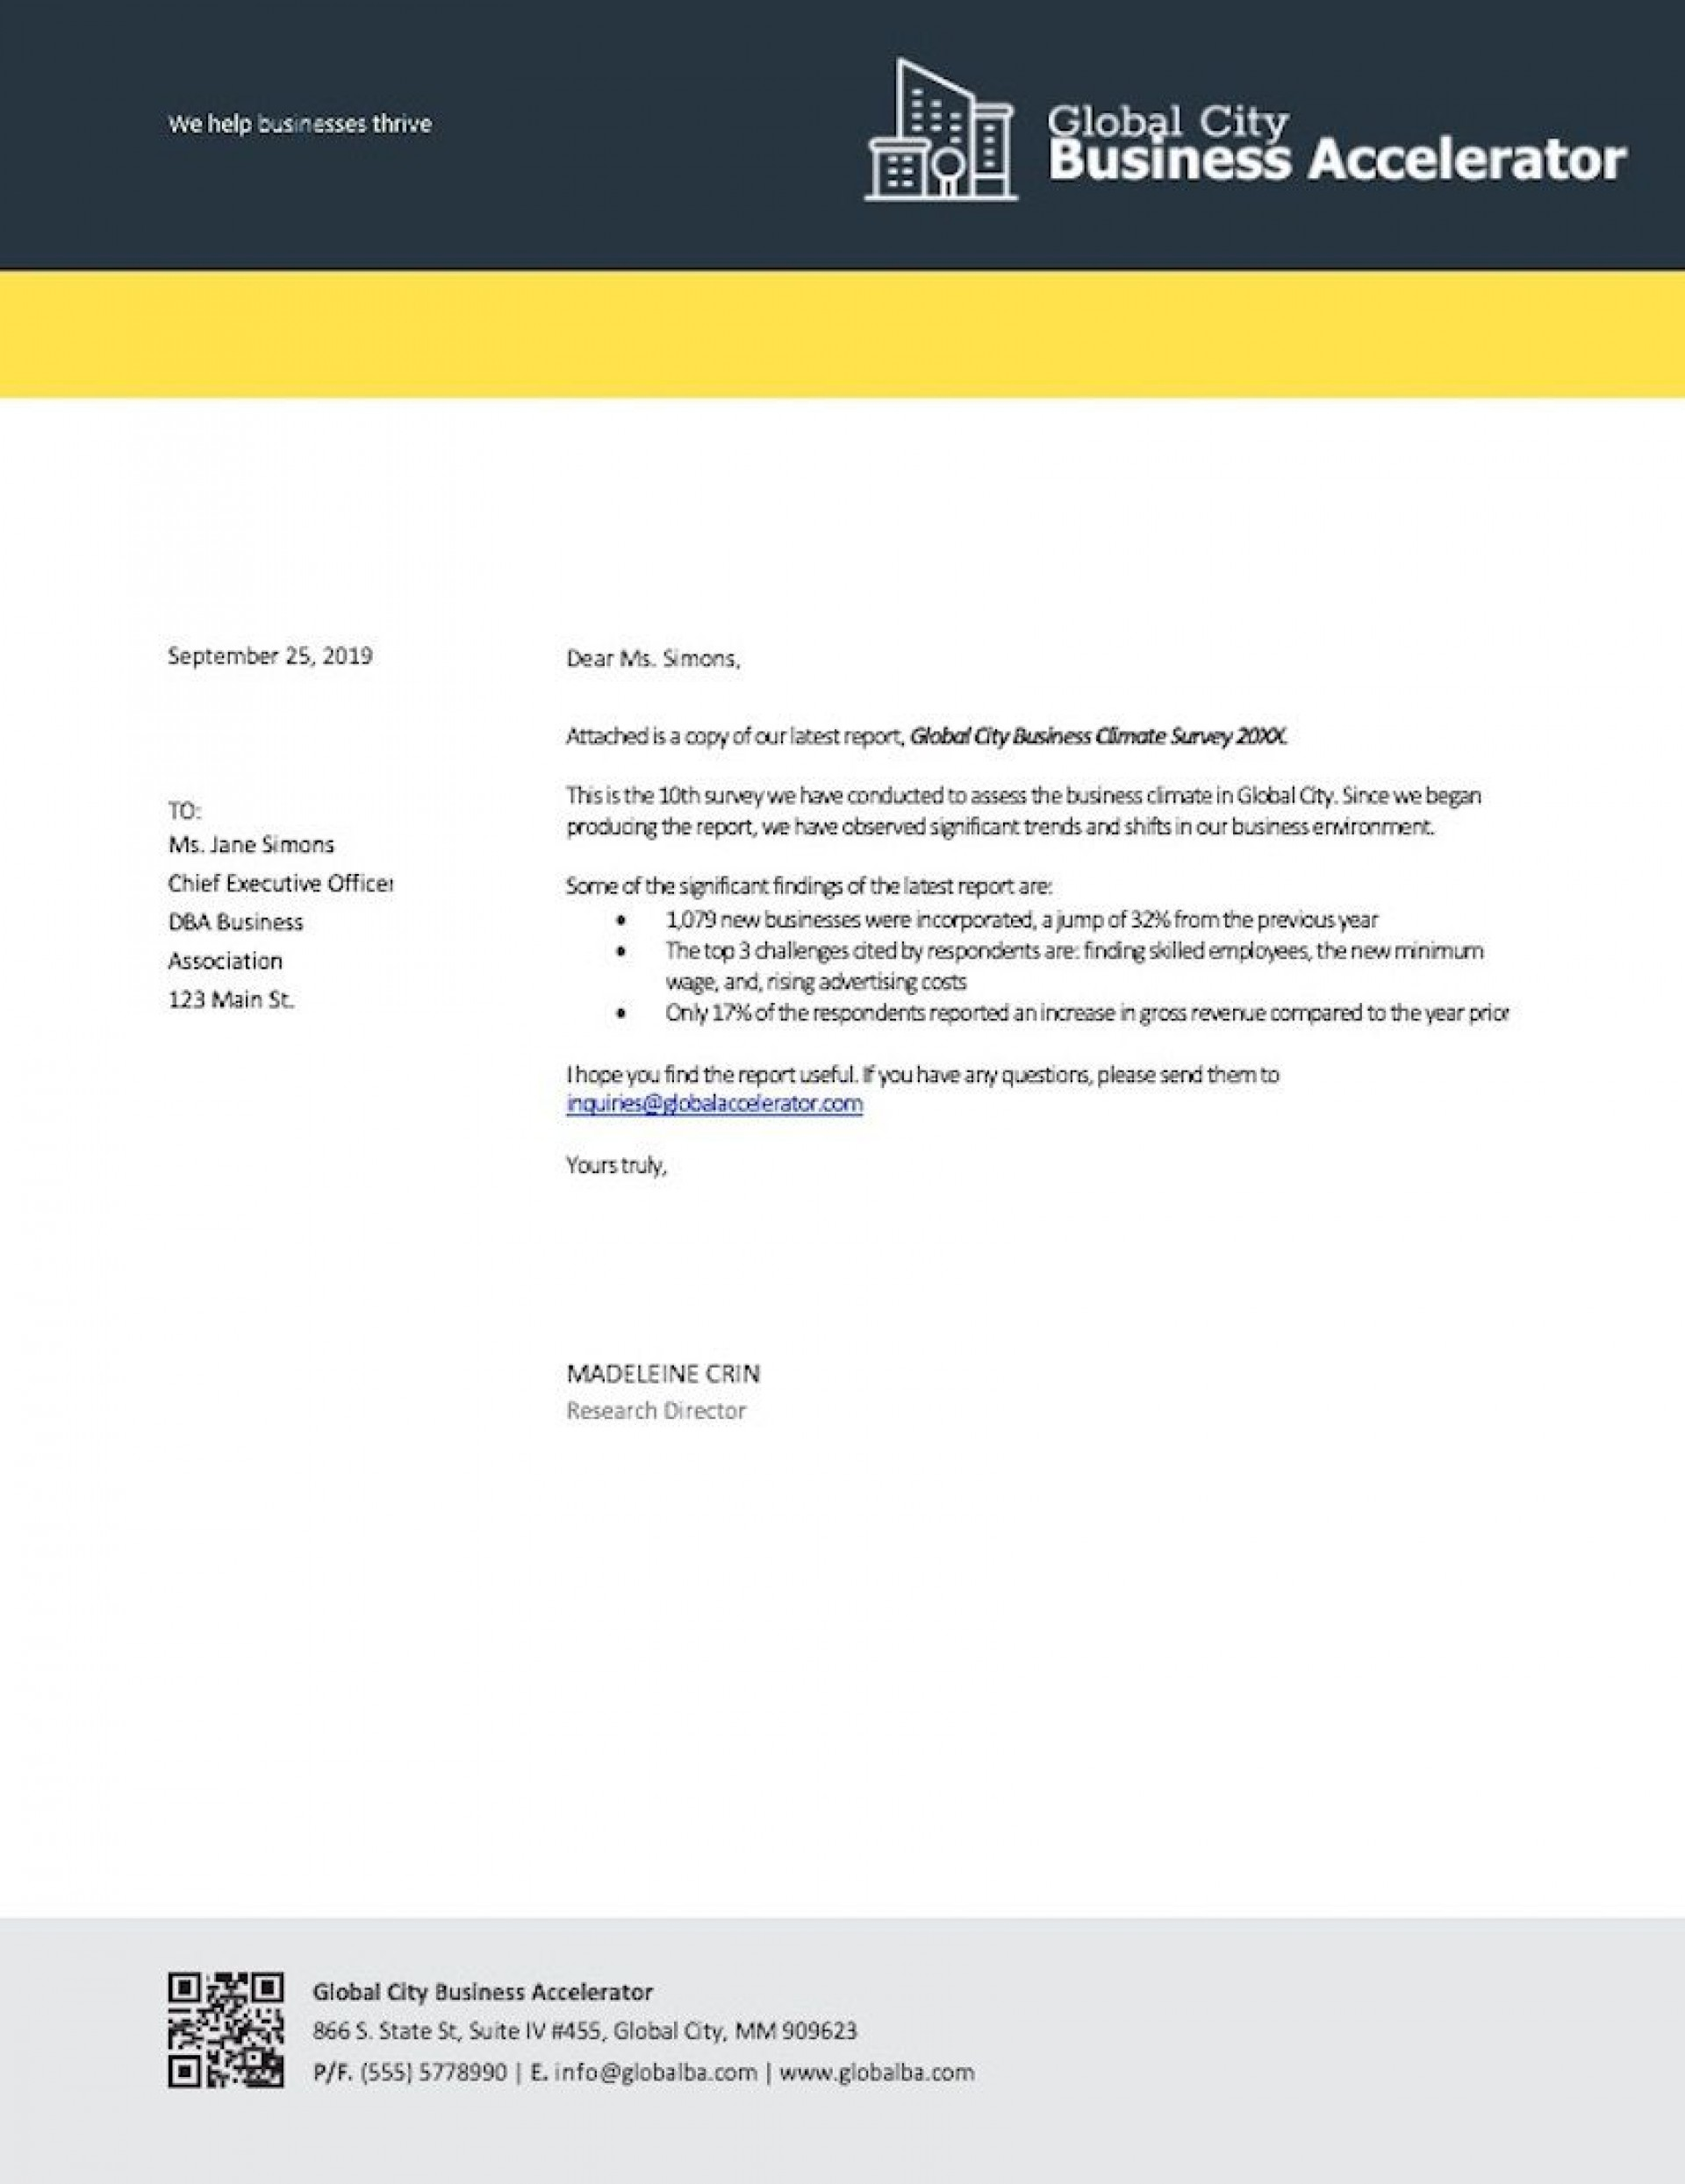 007 Amazing Letter Template M Word Highest Quality  Fax Cover Microsoft Busines Authorization1920